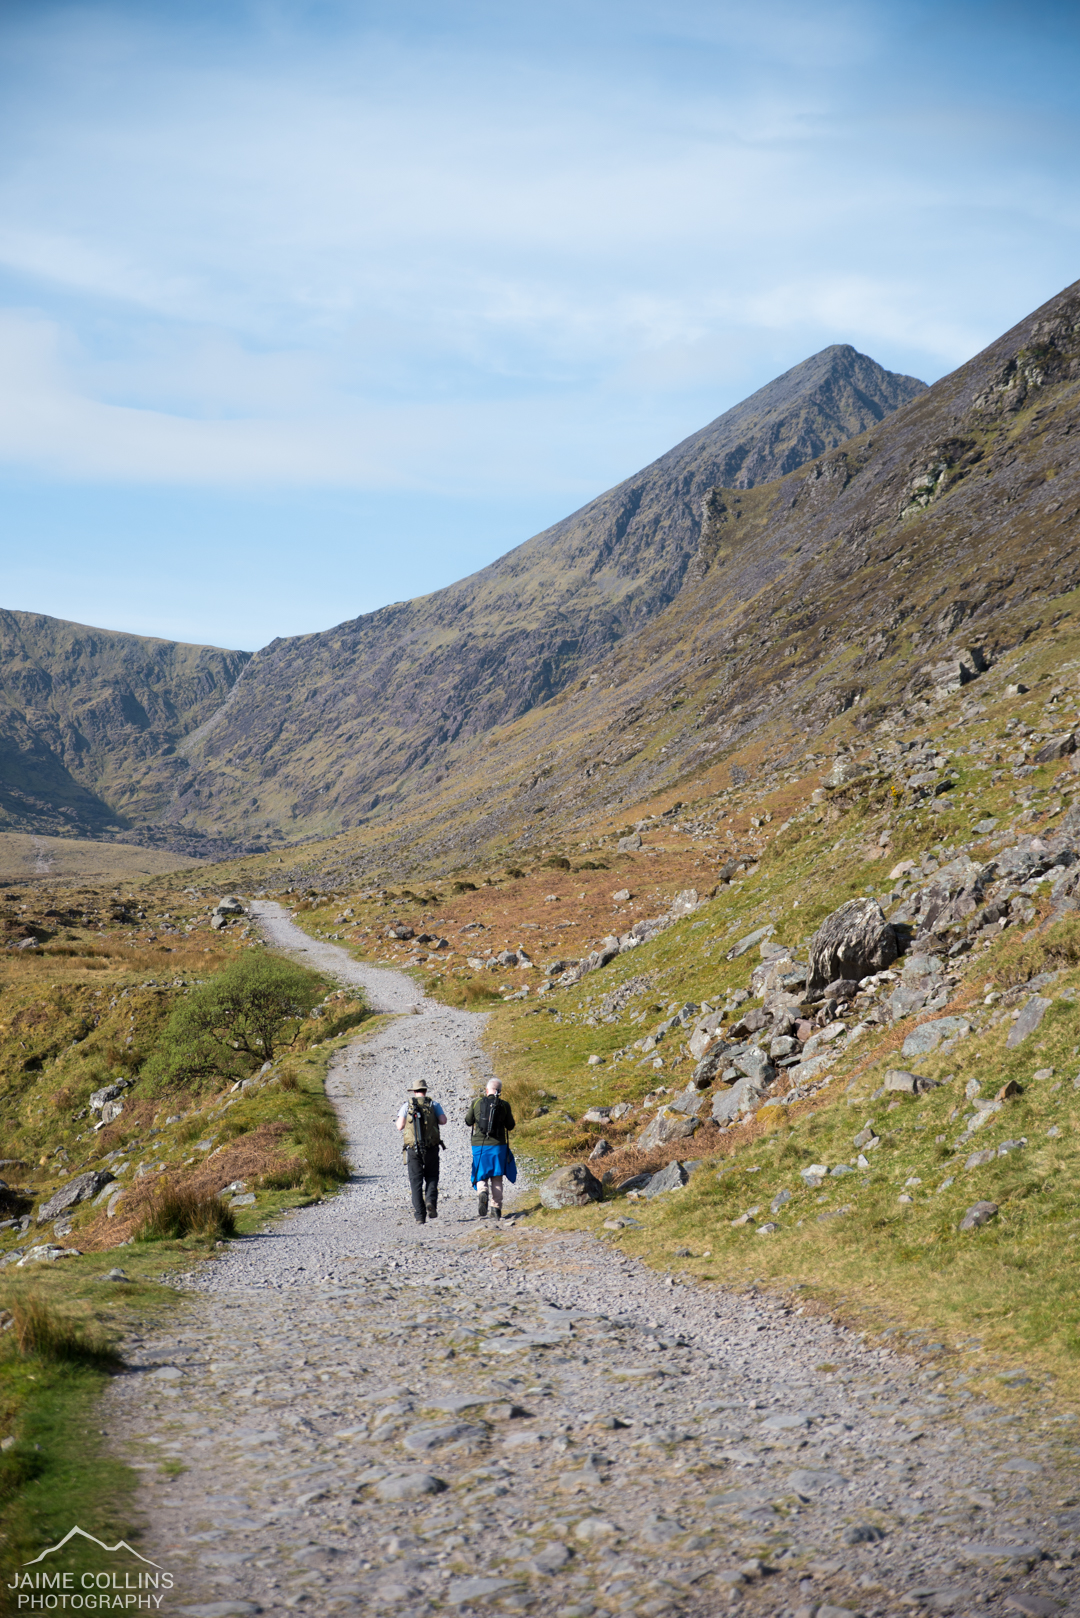 The road to Carrantuohill